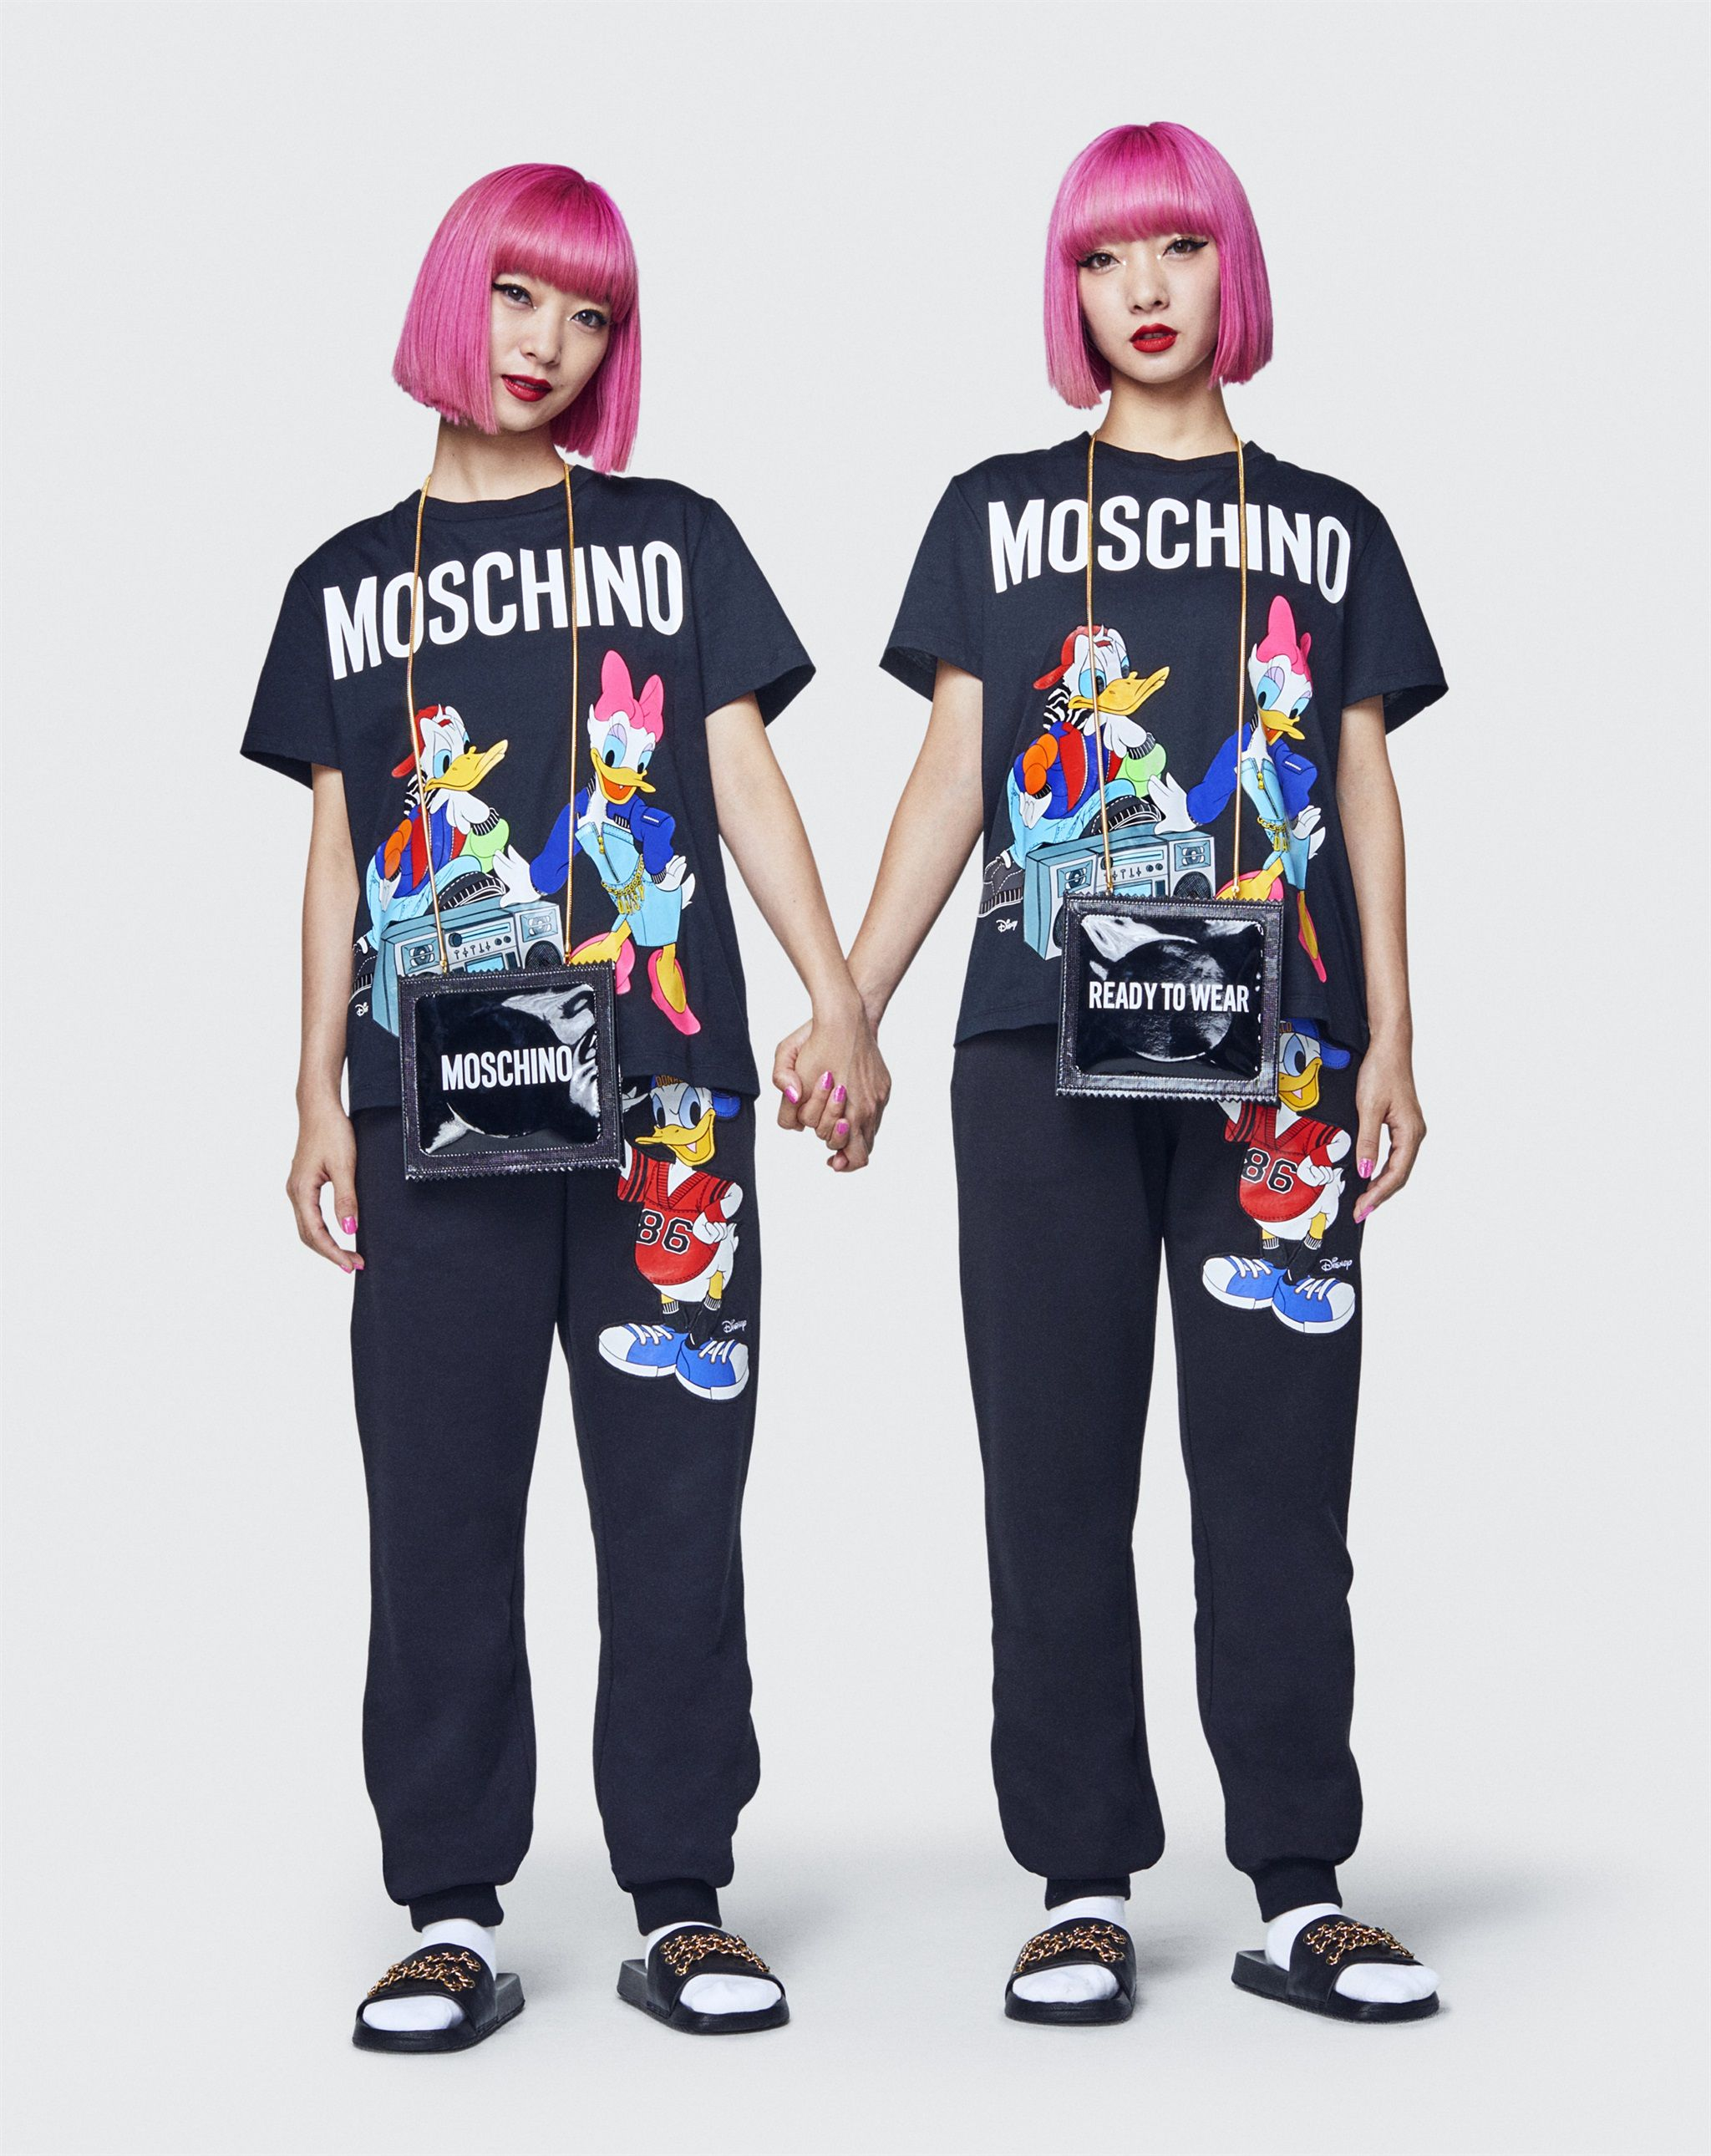 Moschino X H&m Collection Hits Sa Stores In November photo